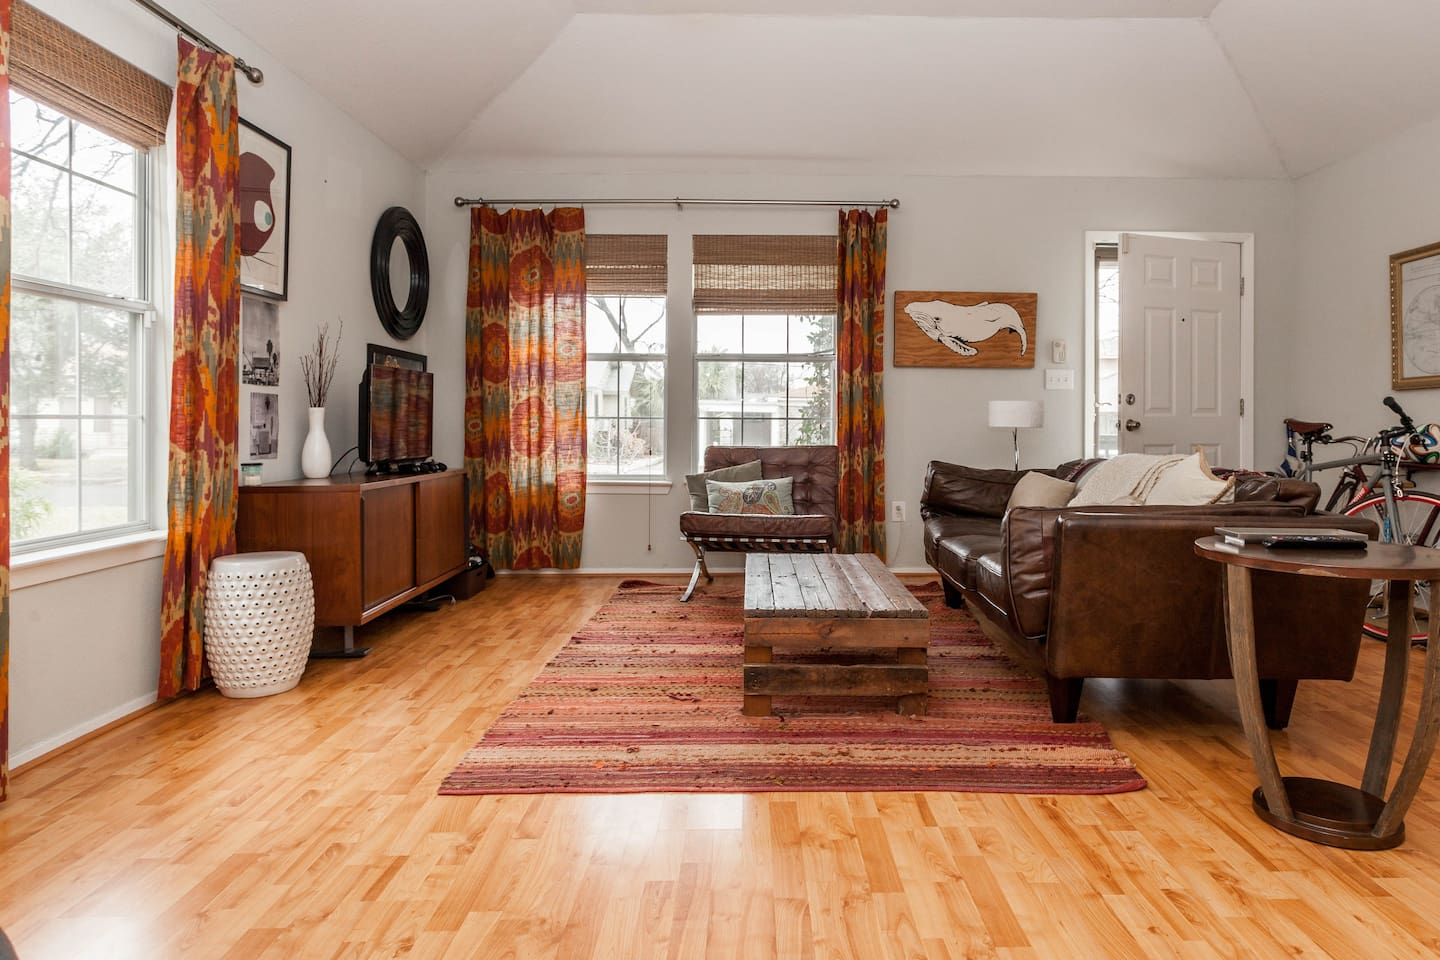 Enjoy your time spent inside. The whole living room and kitchen space is well lit and well windowed, so even when you're not outside, you can enjoy the beautiful Austin weather. In the rare case of bad weather, the rental includes smart TV w/ cable, Netfl